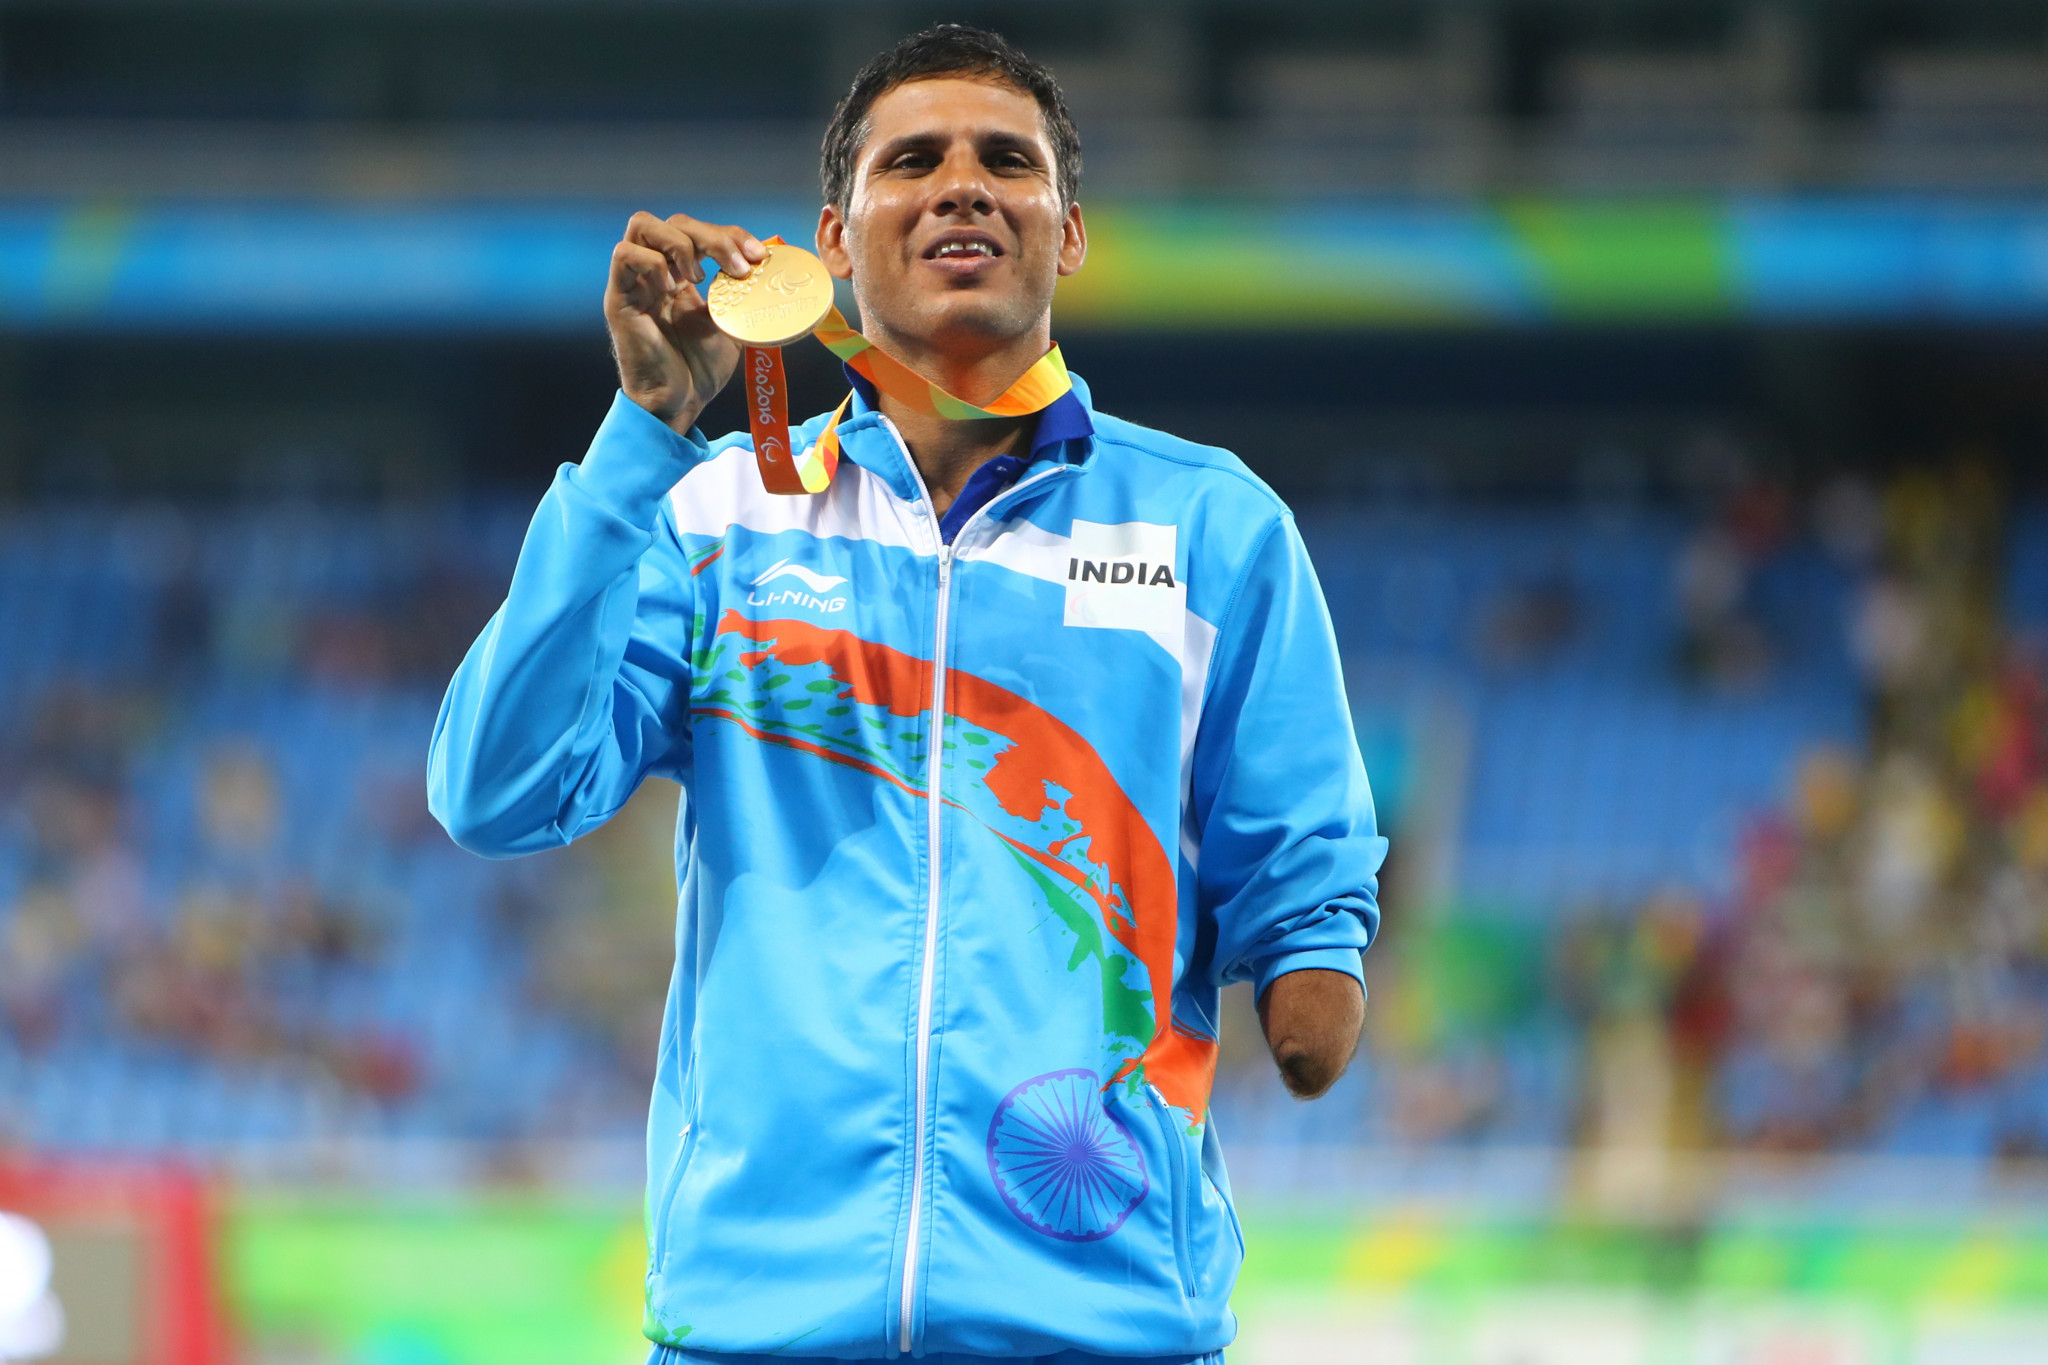 Devendra Jhajharia of India poses on the podium at the Rio 2016 Paralympic Games after winning the men's F46 javelin gold medal ©Getty Images